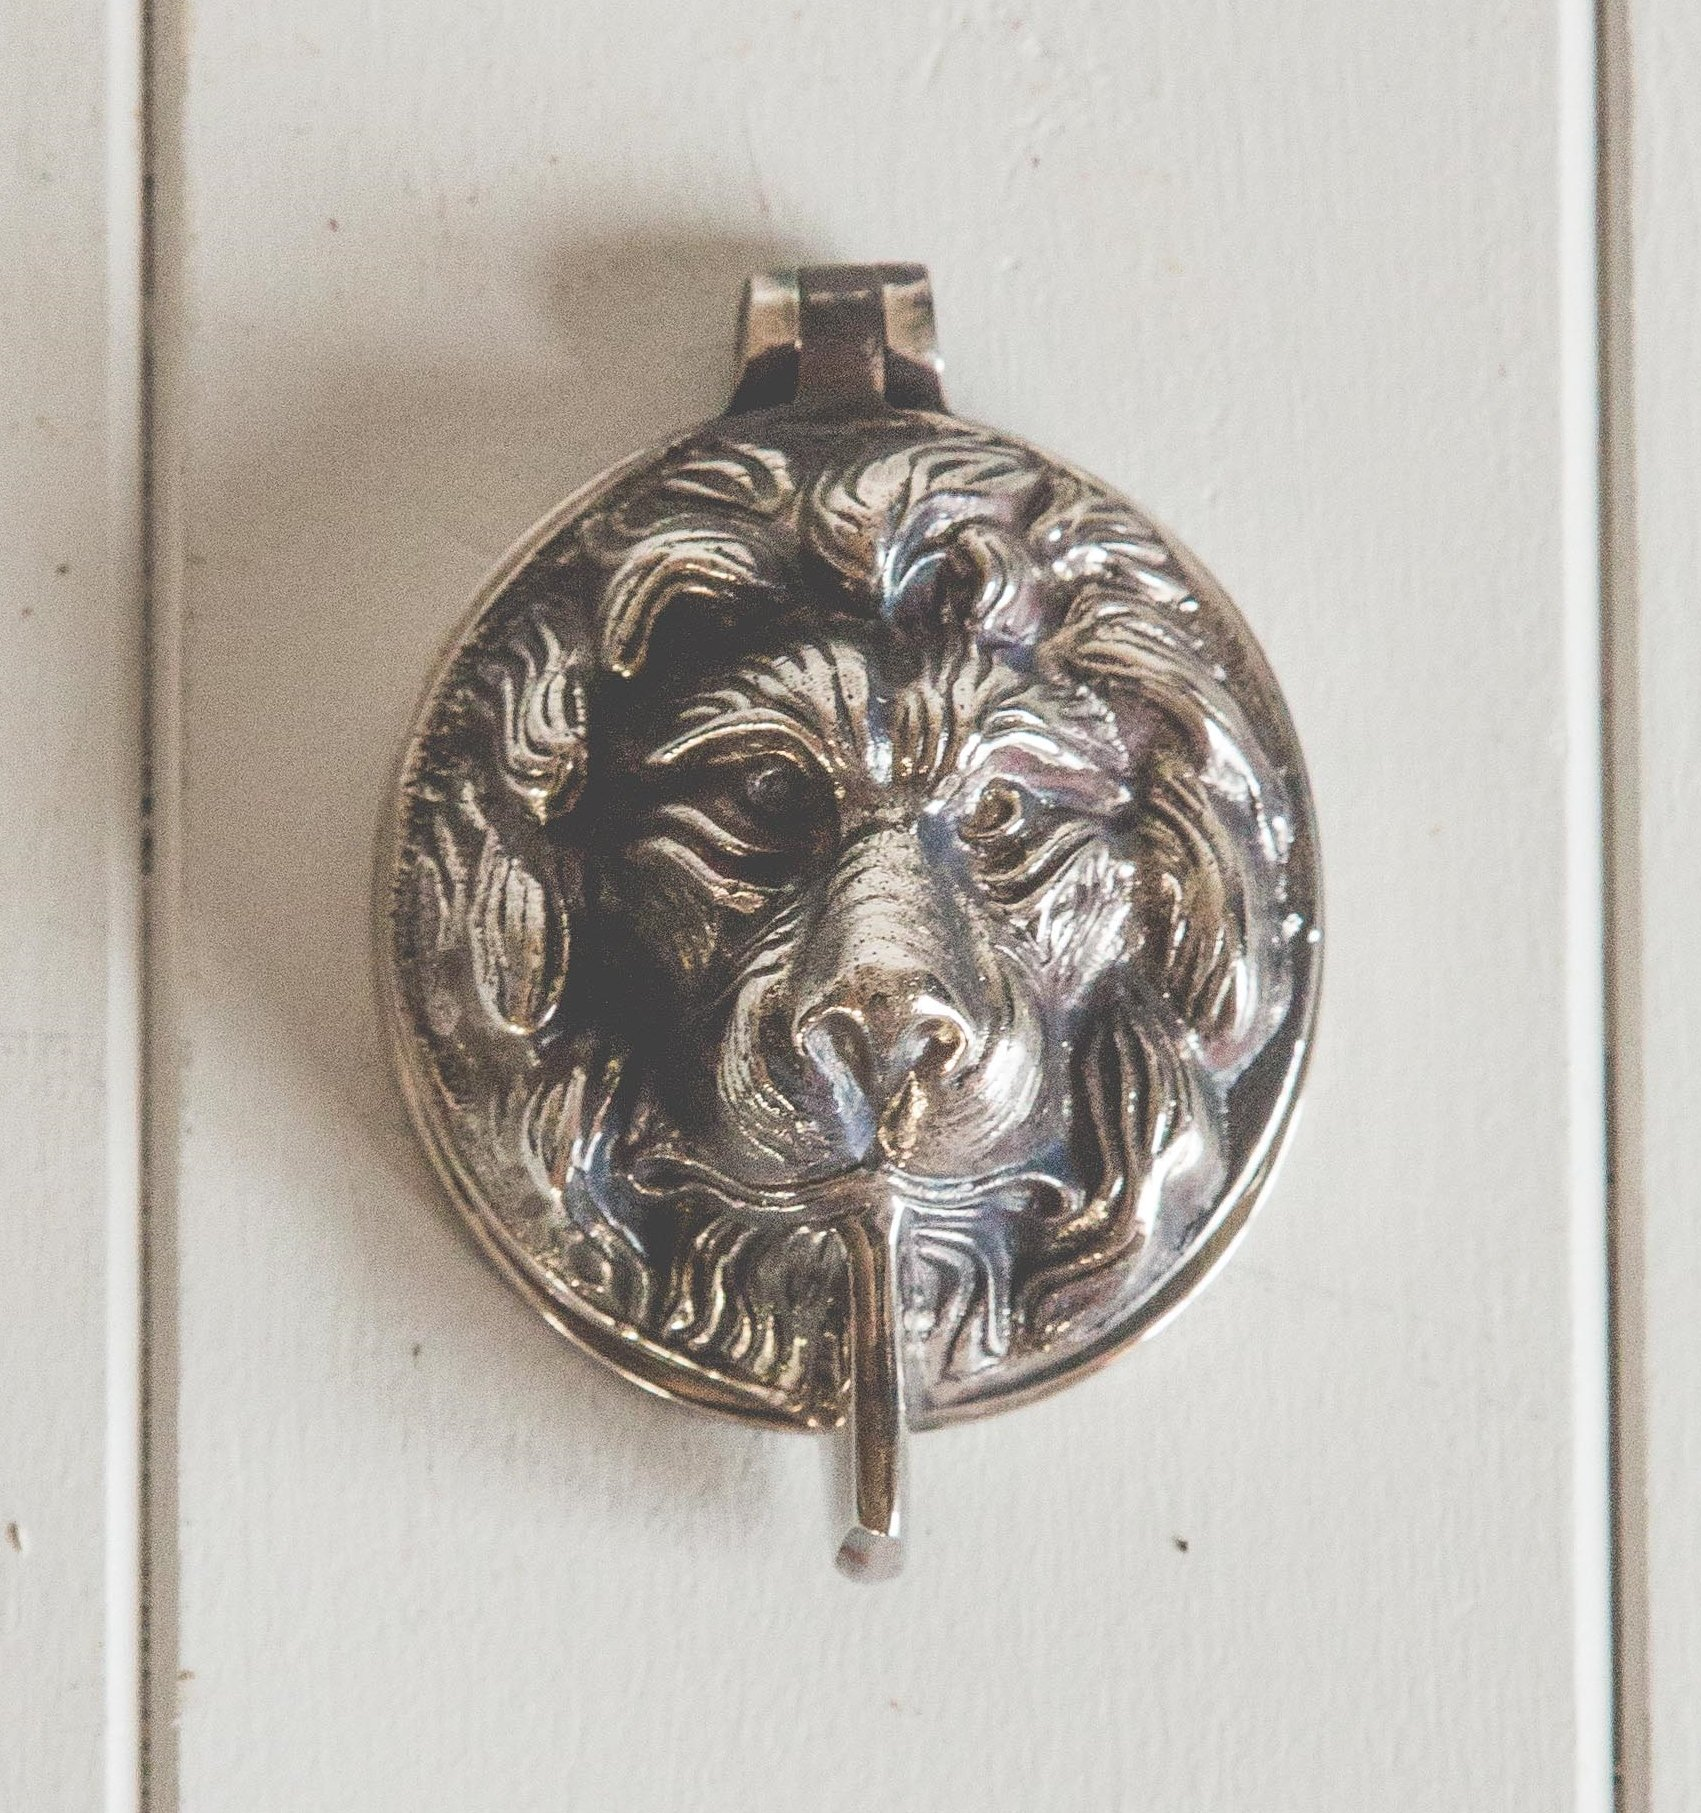 Lions Head Latch Key Cover - Aged Nickel